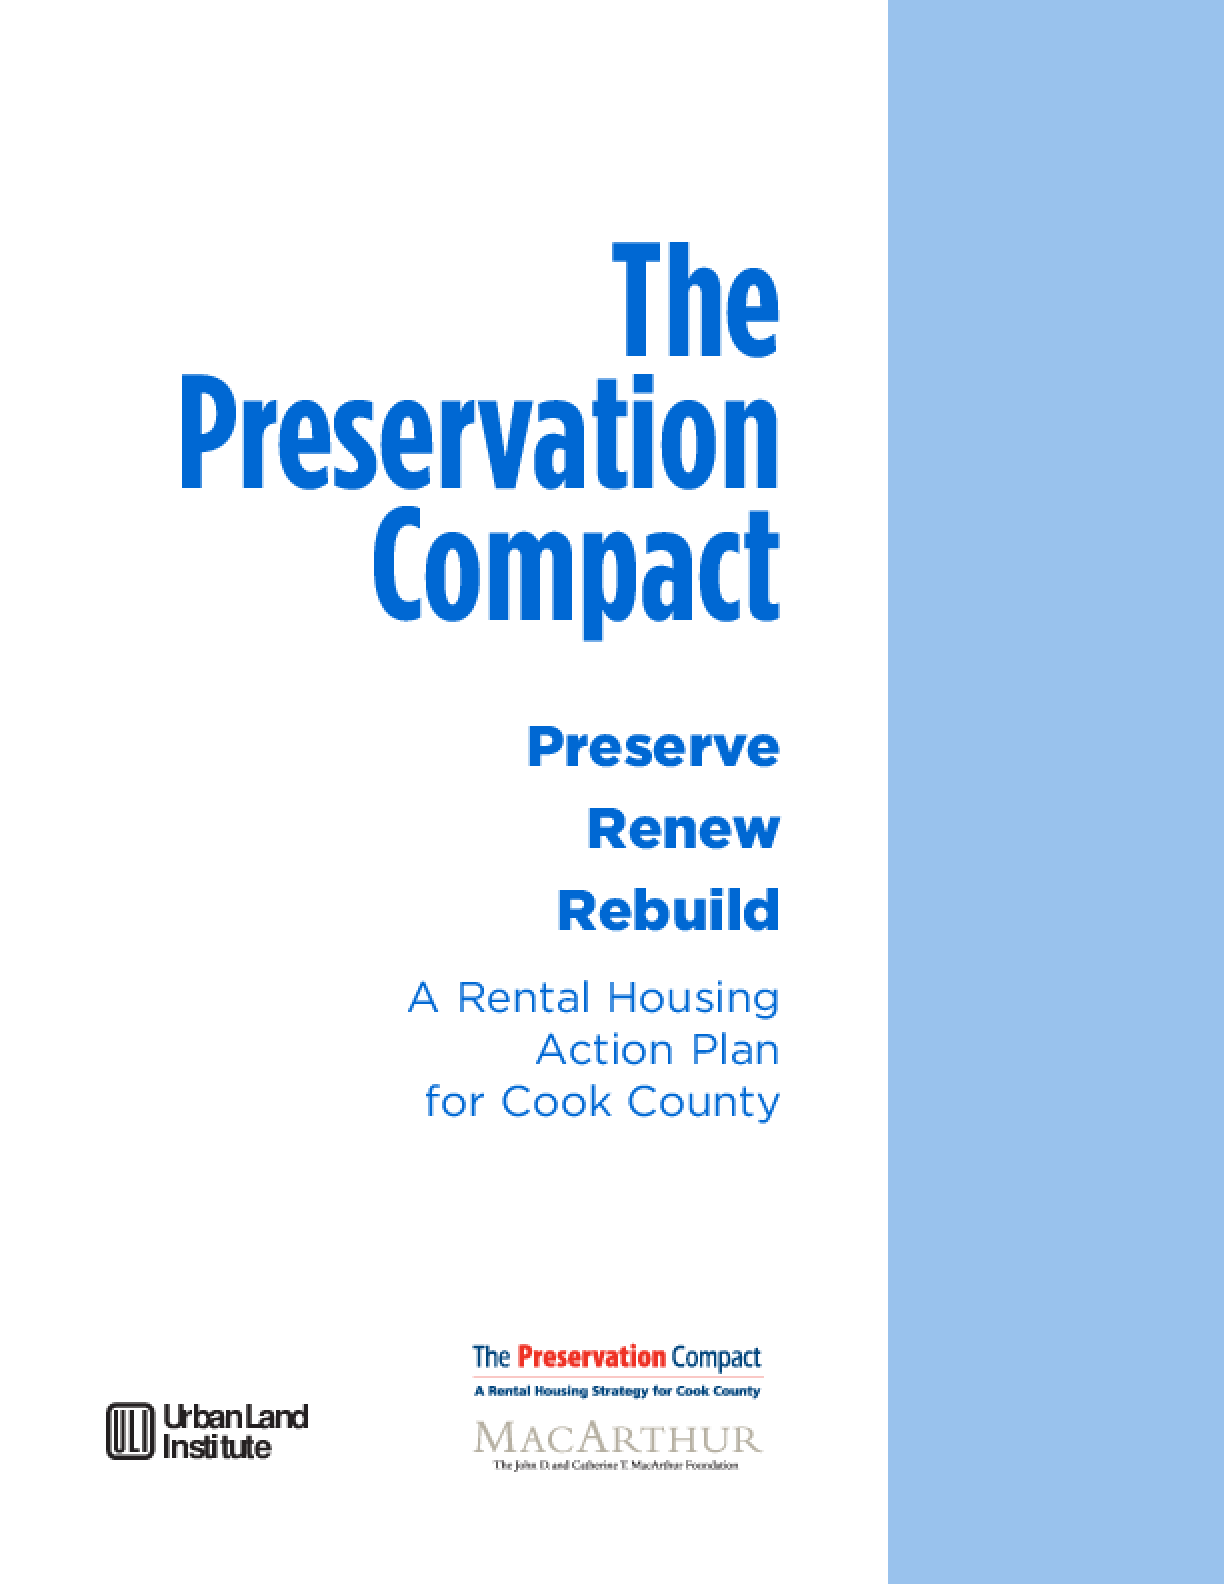 Preservation Compact: Preserve, Renew, Rebuild: A Rental Housing Action Plan for Cook County